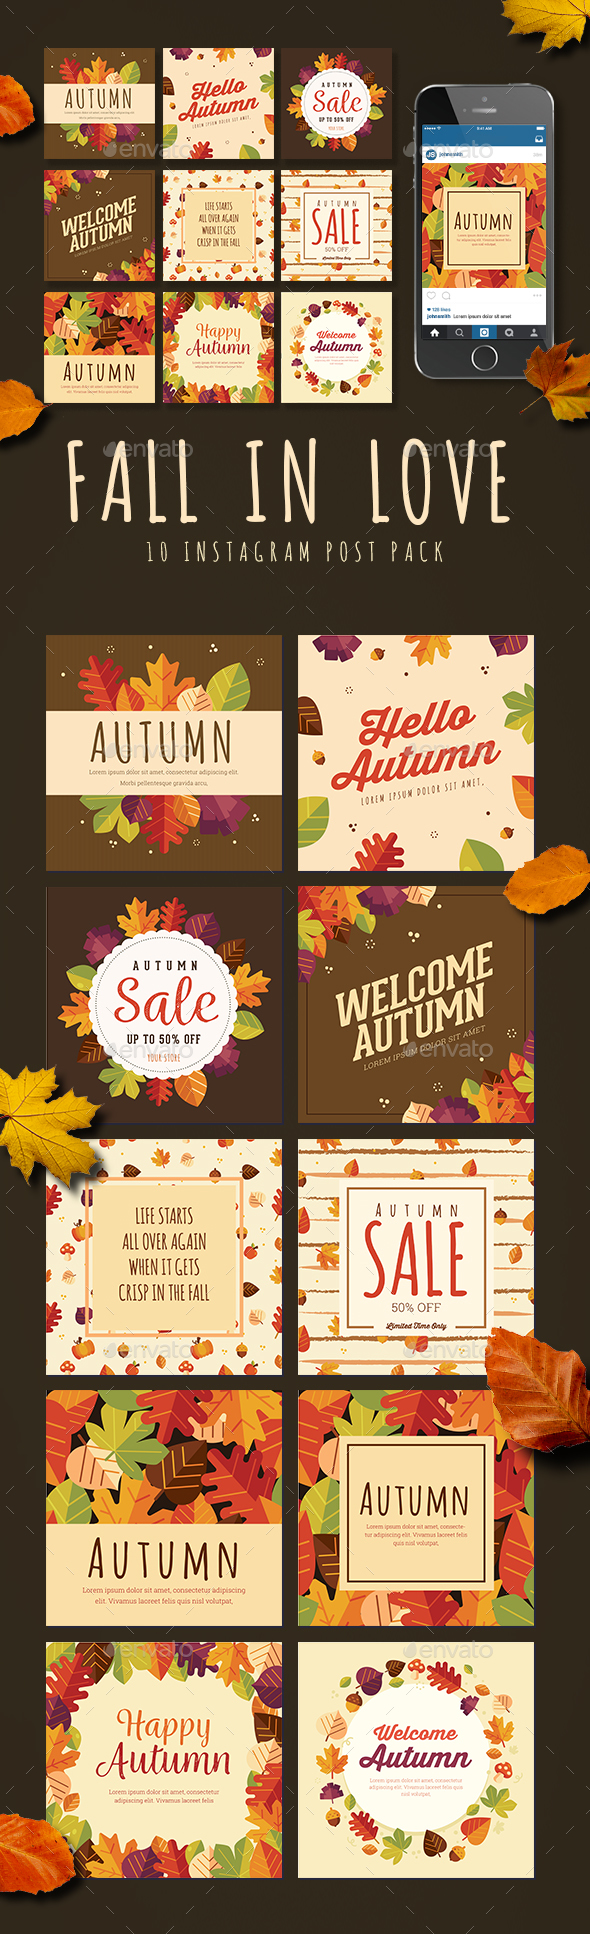 Fall in Love 10 Instagram Post Pack - Social Media Web Elements